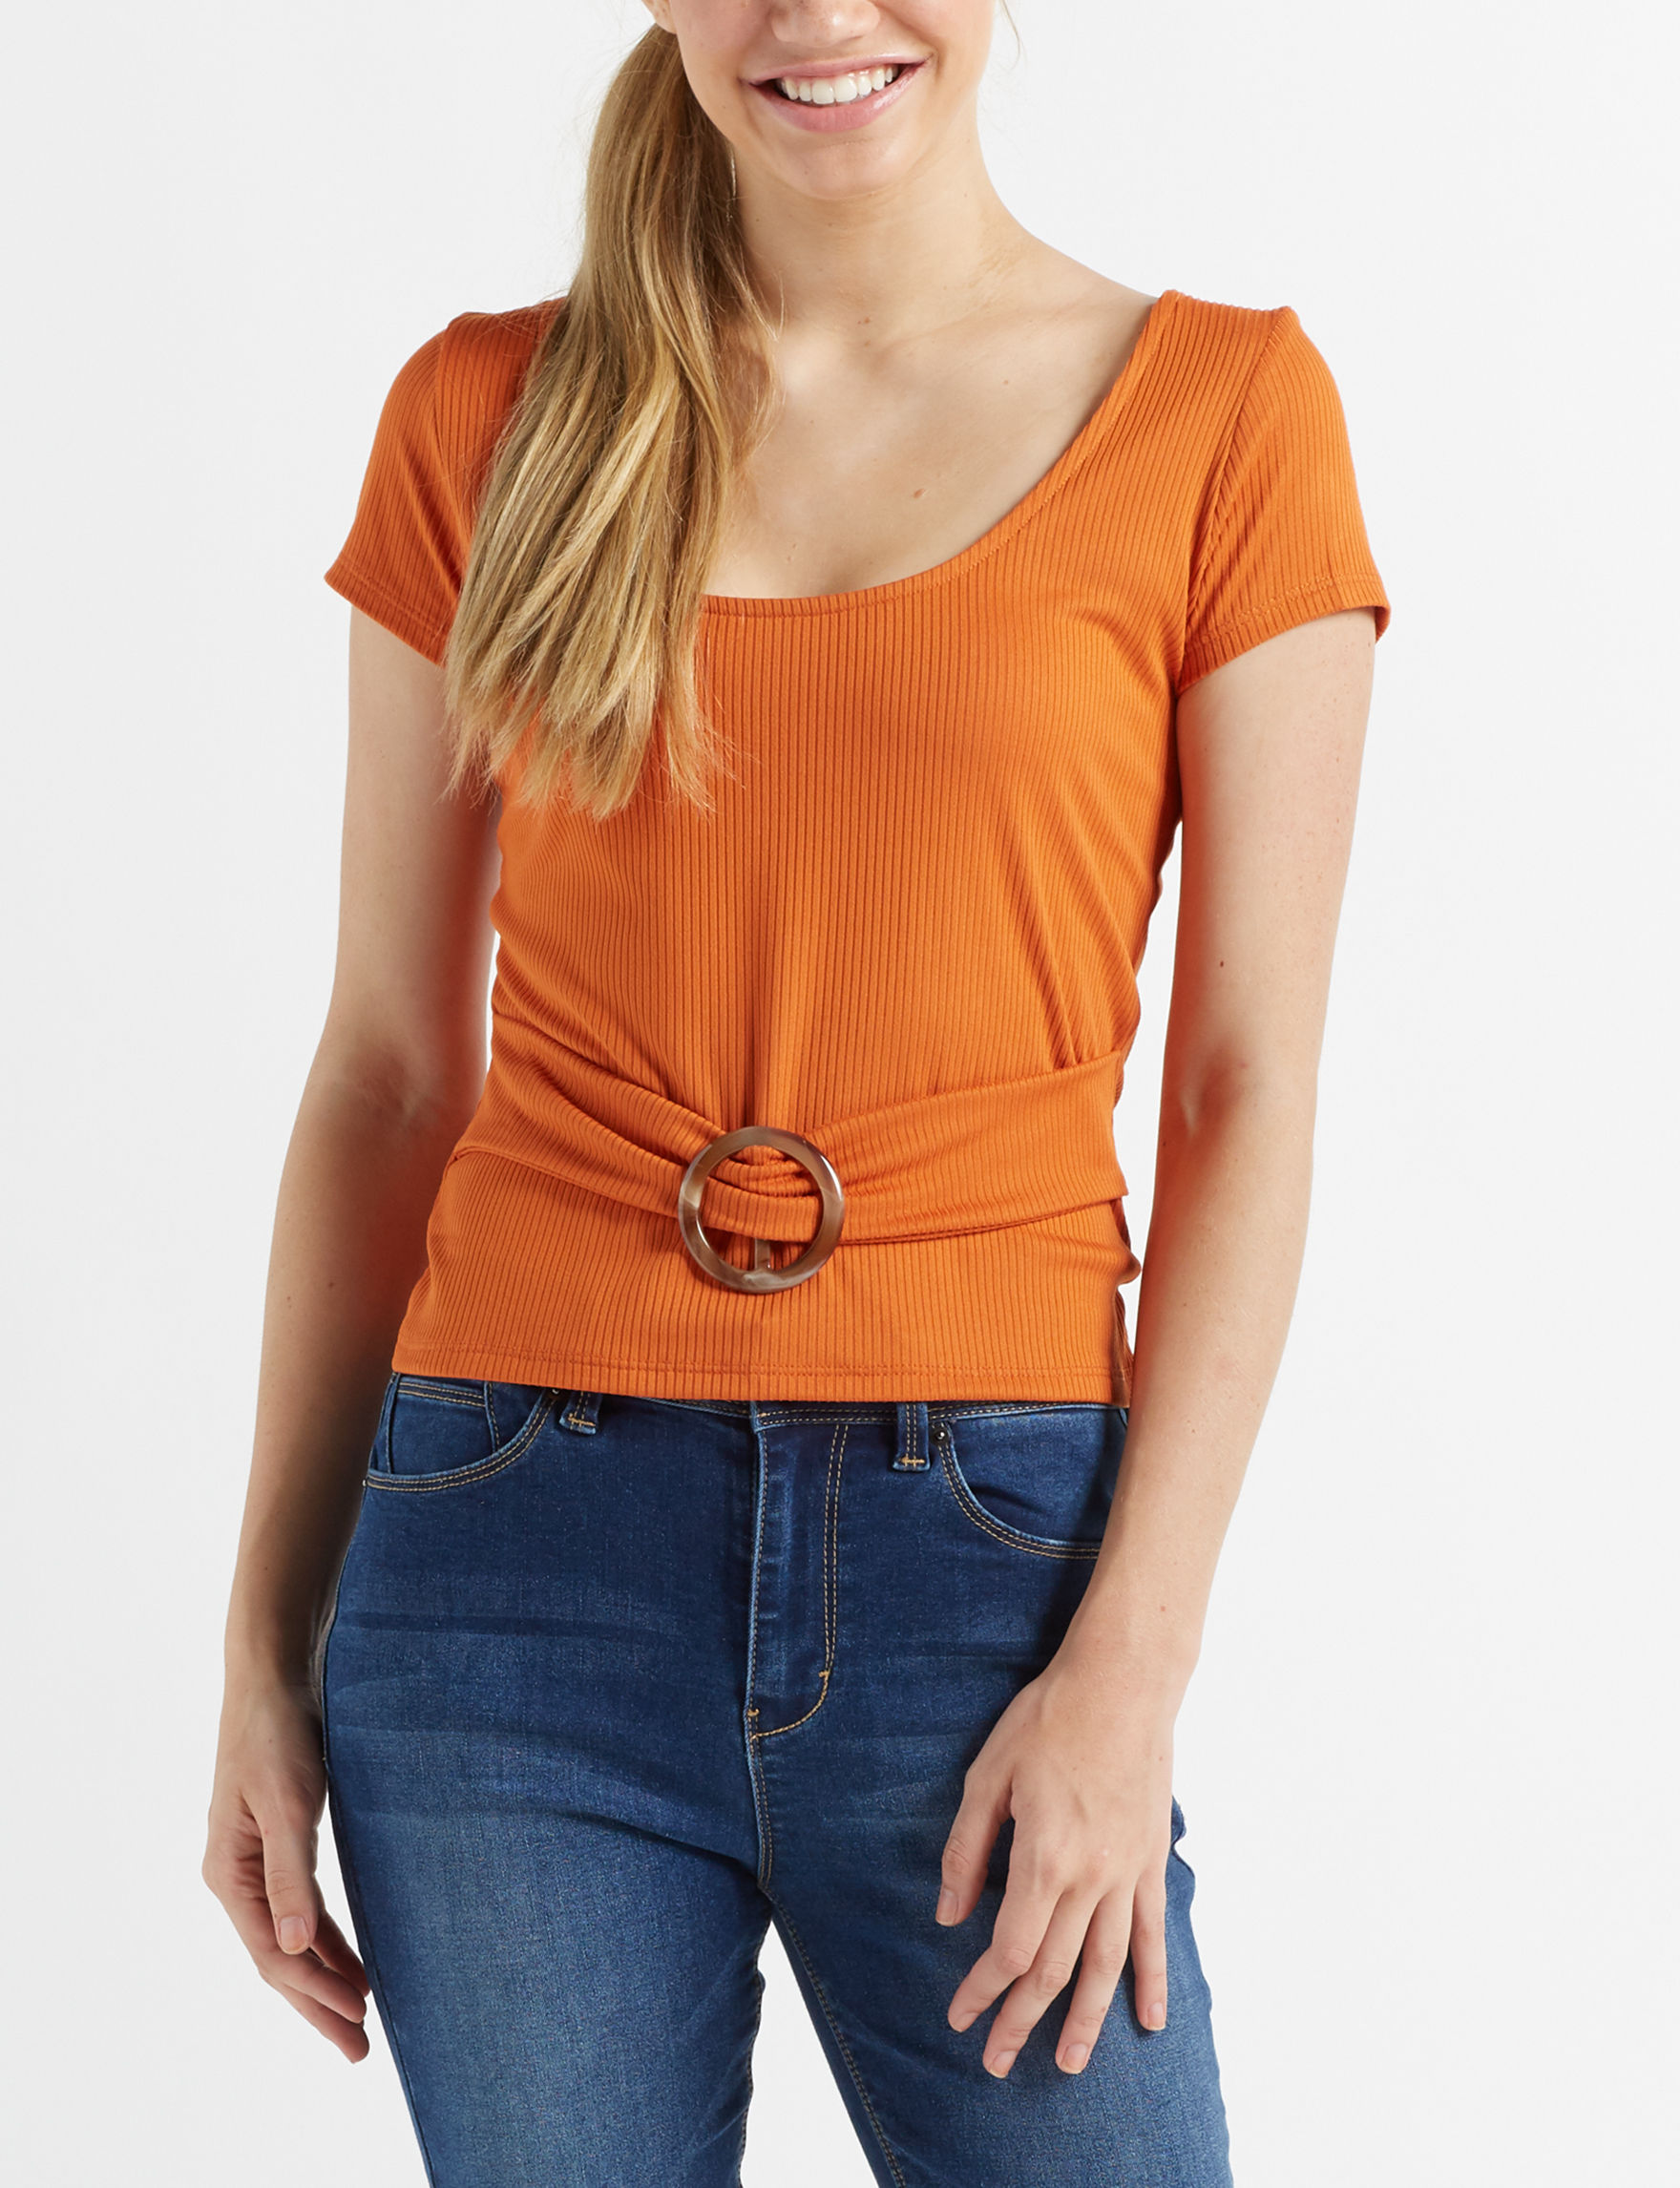 Charmed Hearts Rust Shirts & Blouses